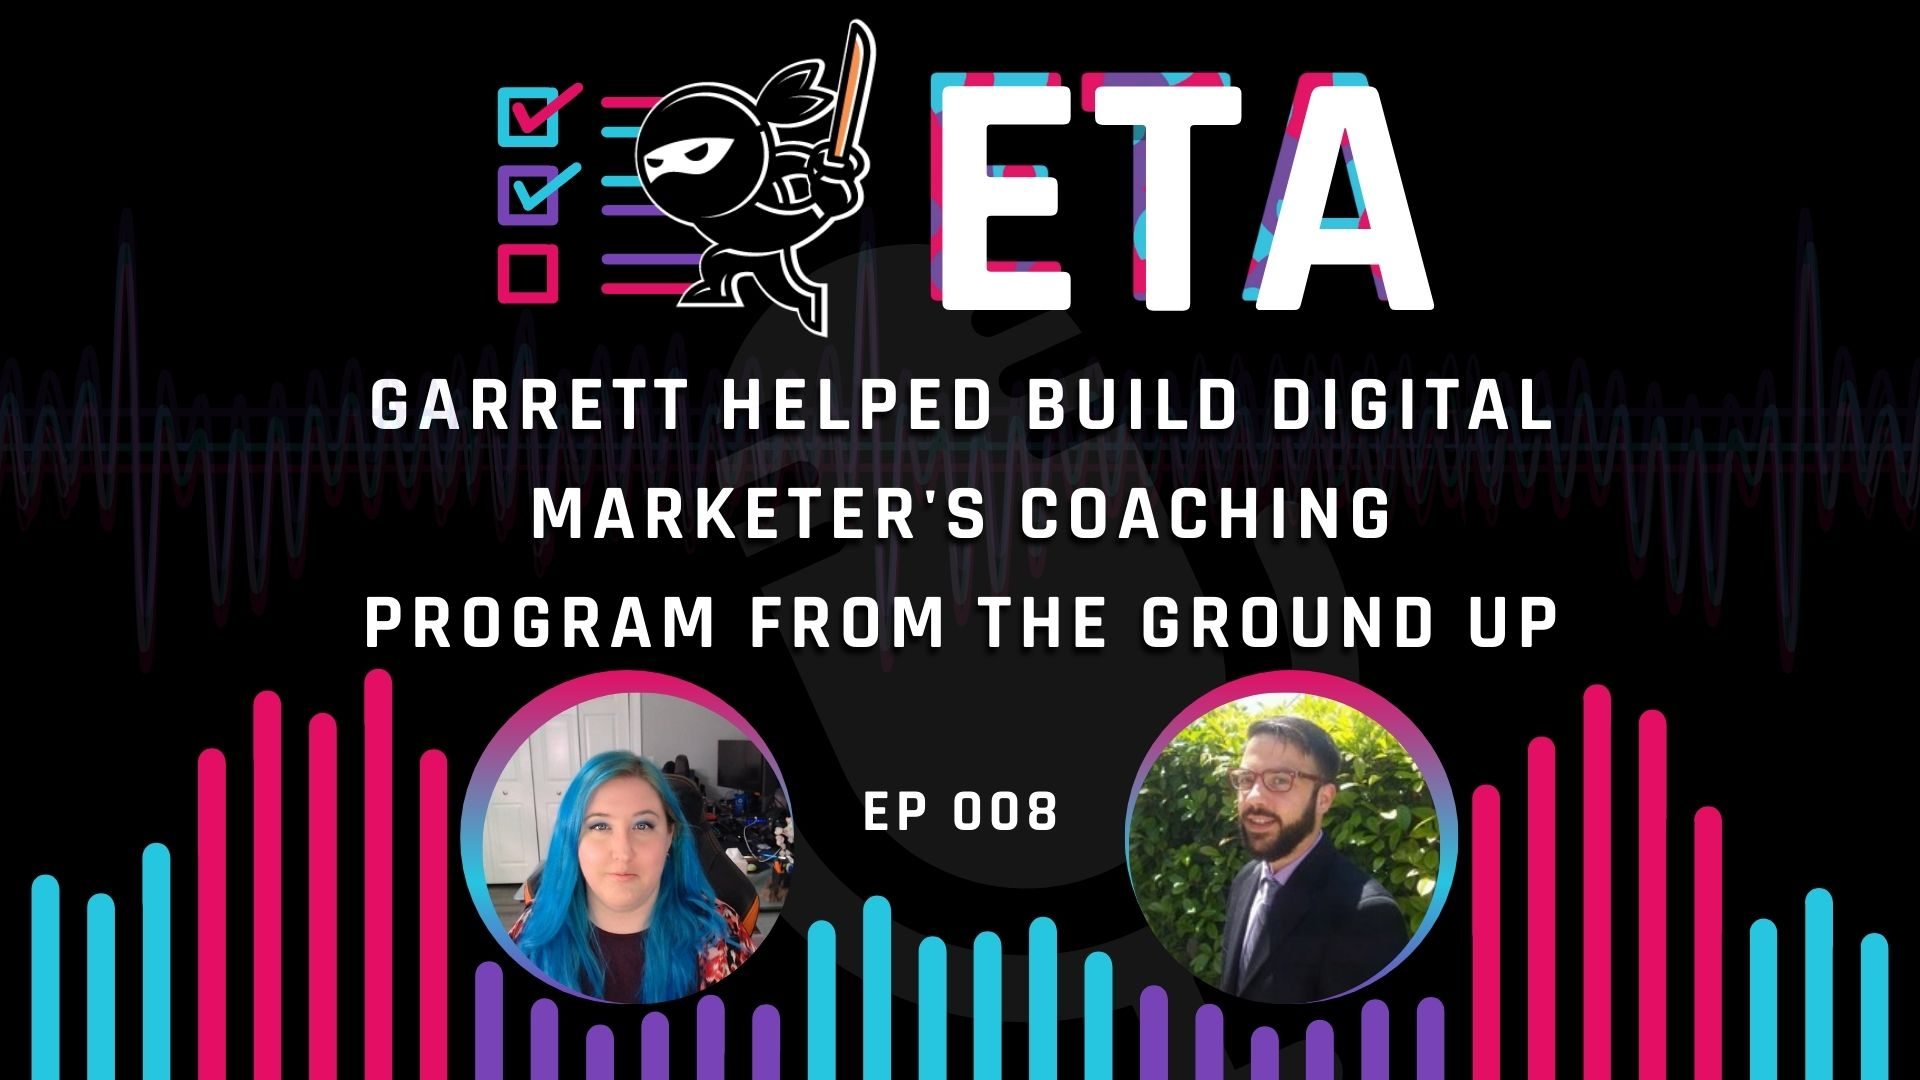 008 — Garrett D'Entremont Helped Build Digital Marketer's Coaching Program from the Ground Up